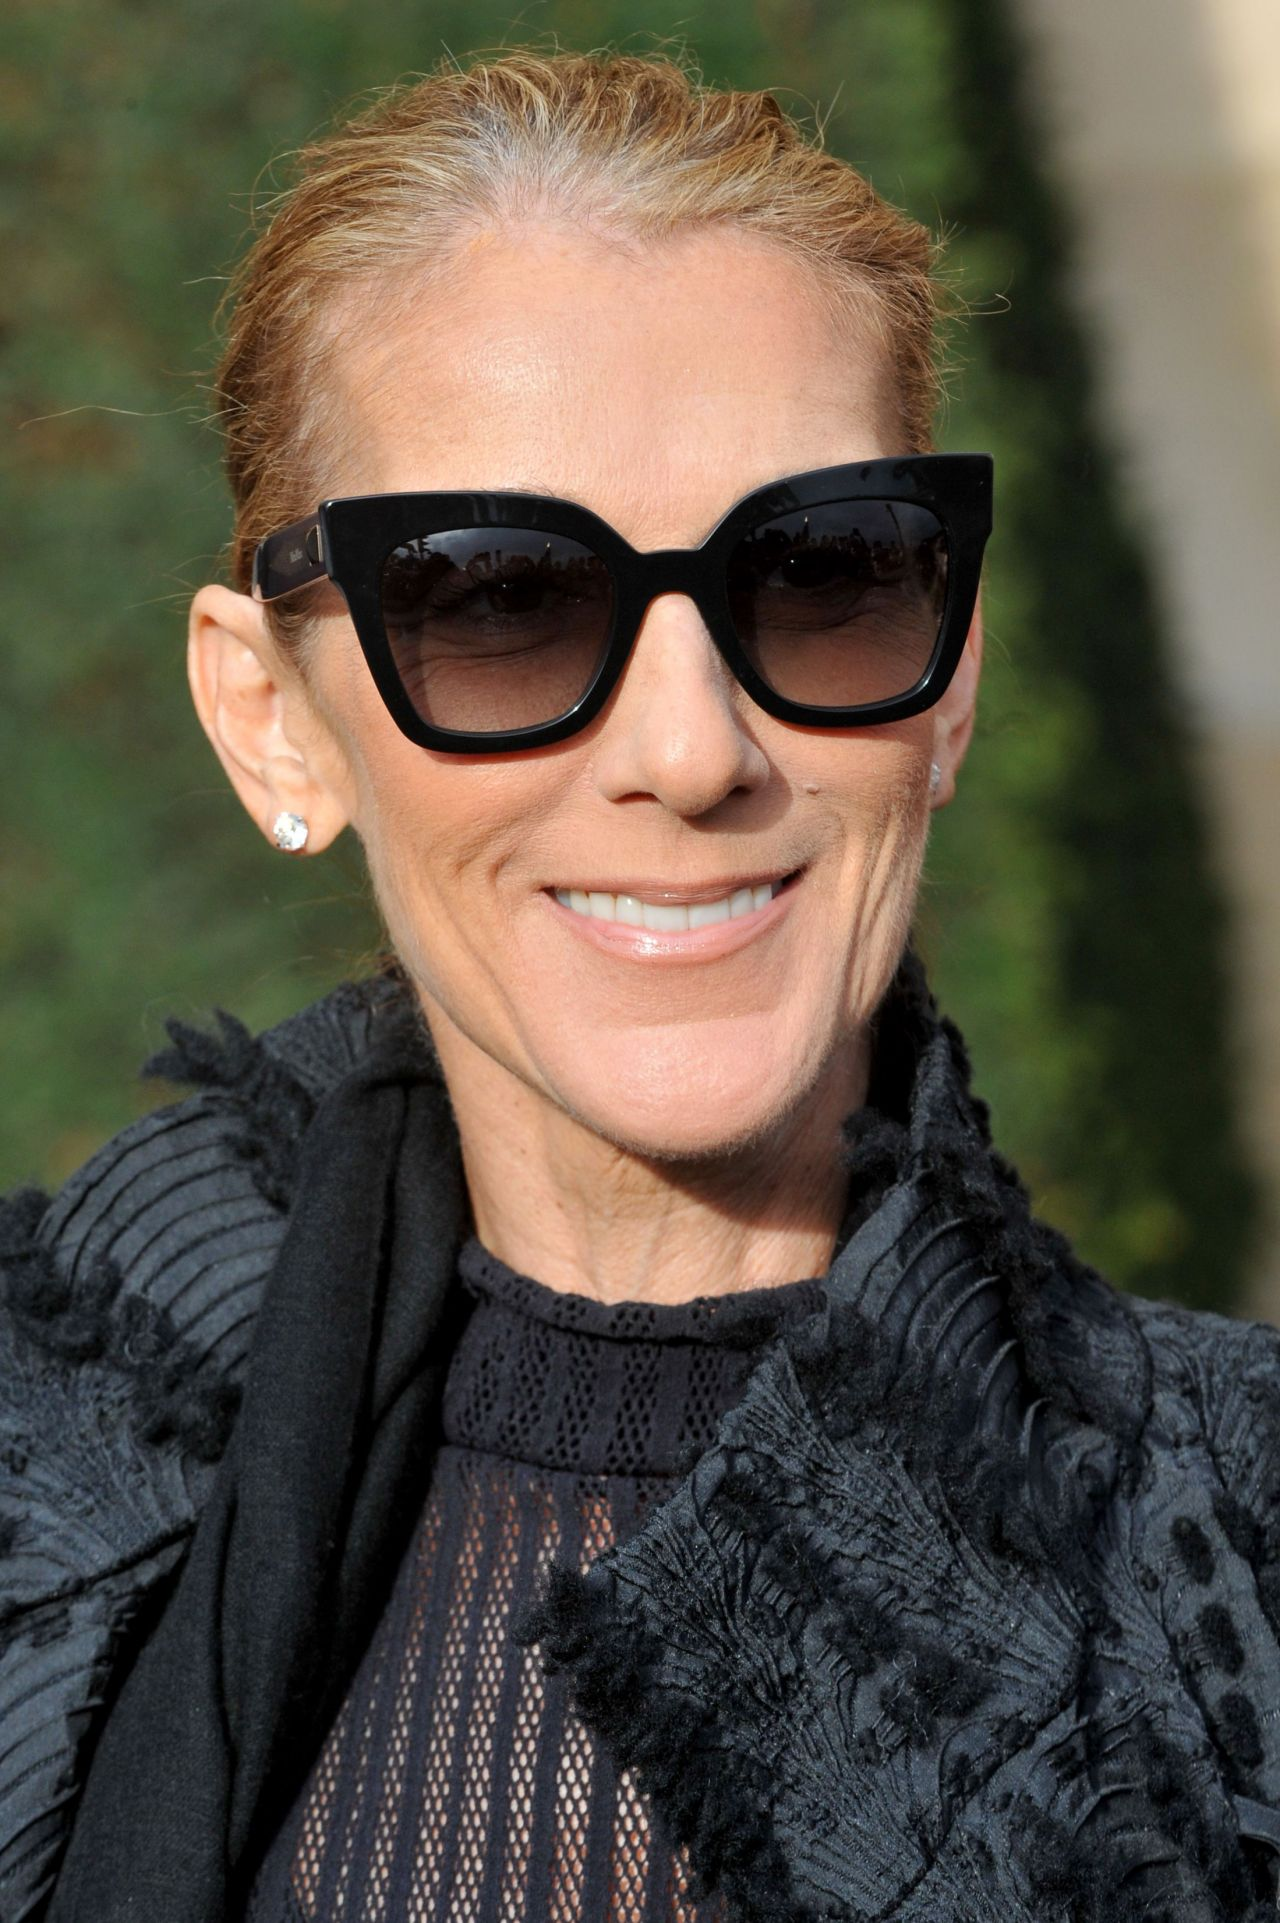 Celine Dion Reveals Reason For Her Dramatic Weight Loss